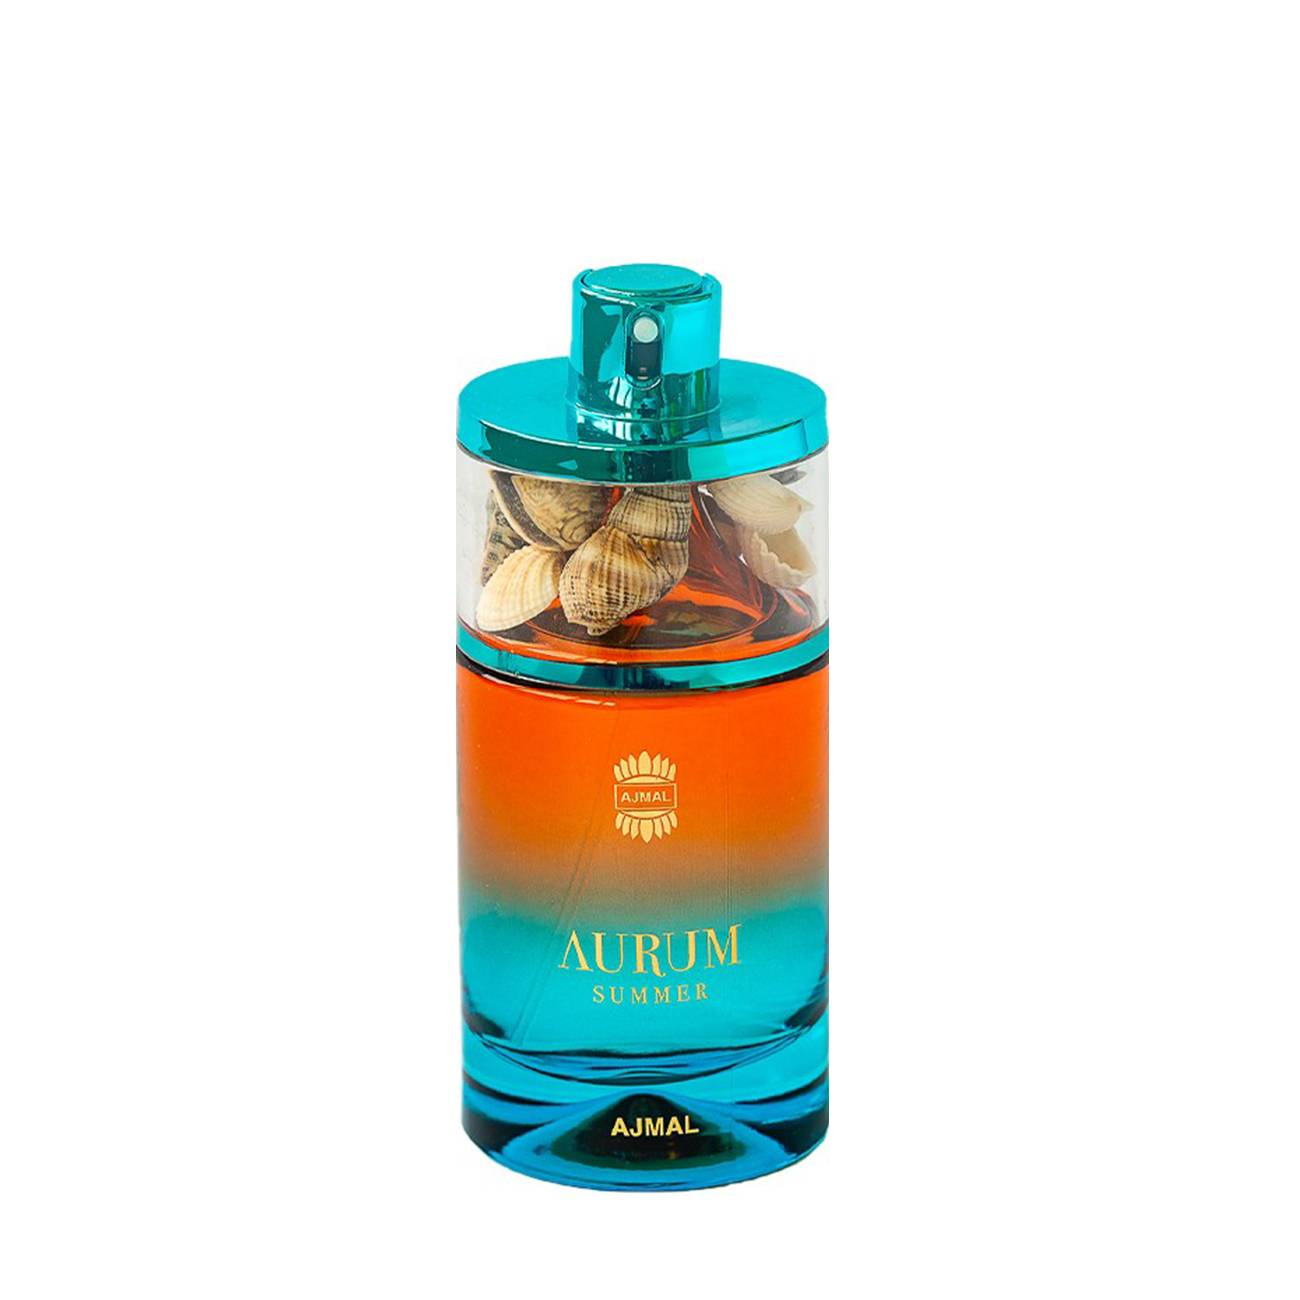 AURUM SUMMER 75ml imagine